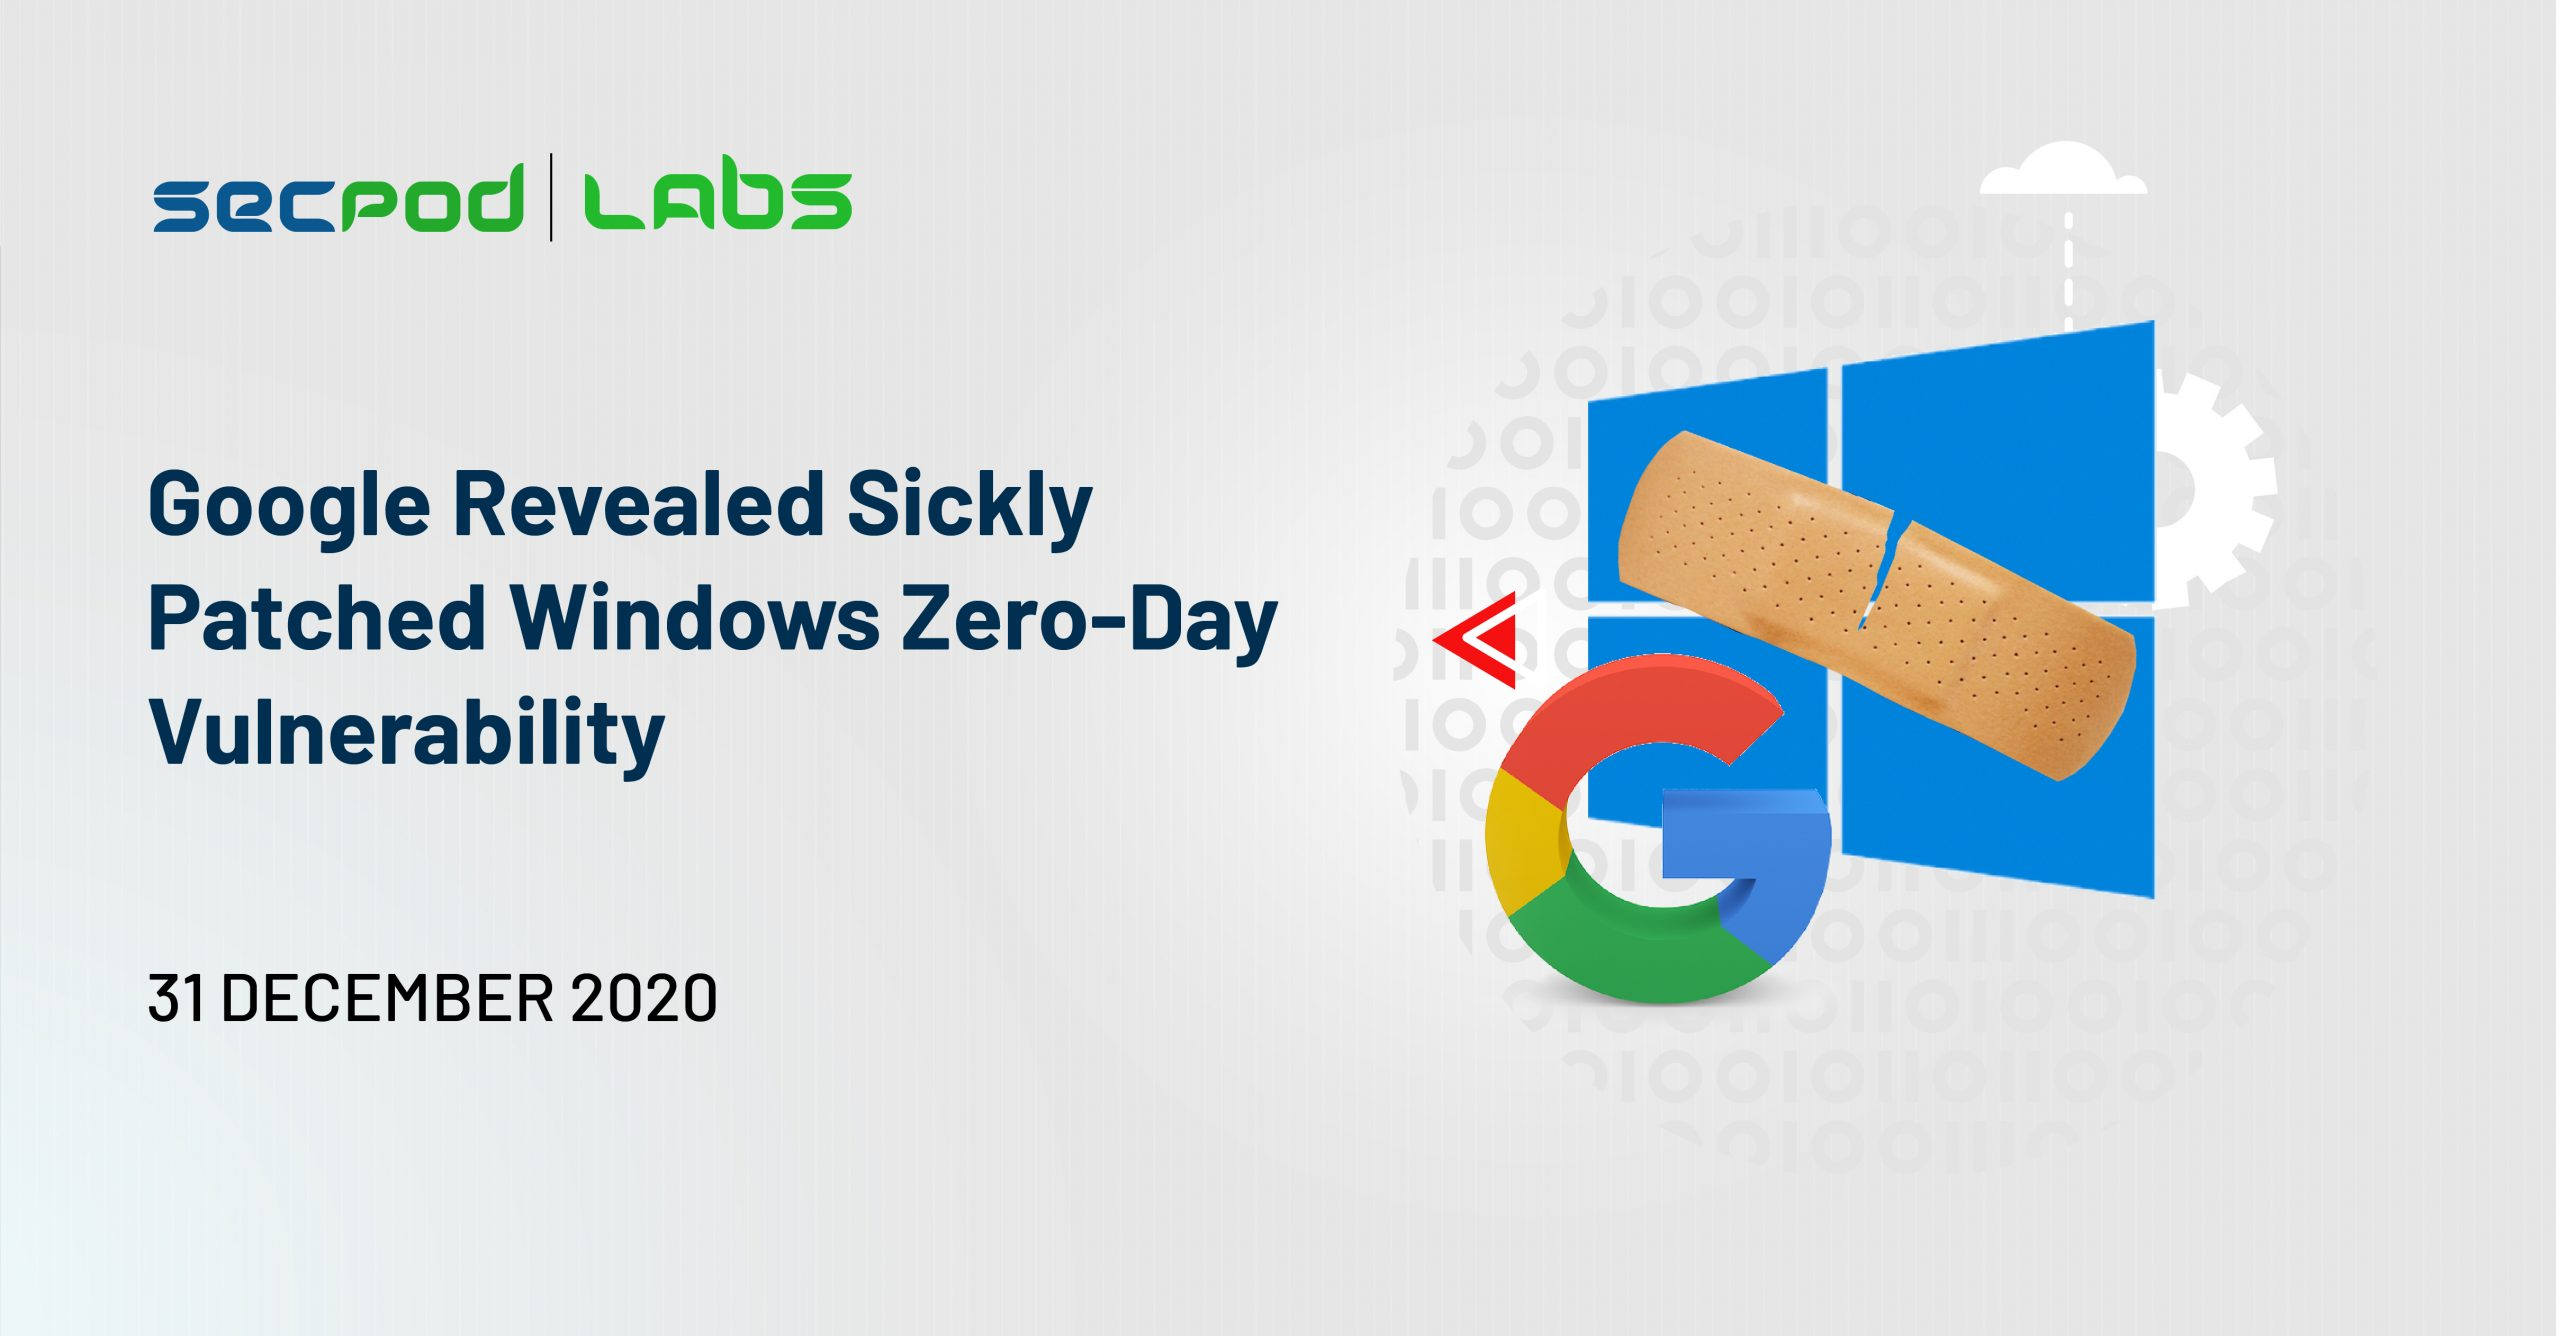 Google Revealed Sickly Patched Windows Zero-Day Vulnerability